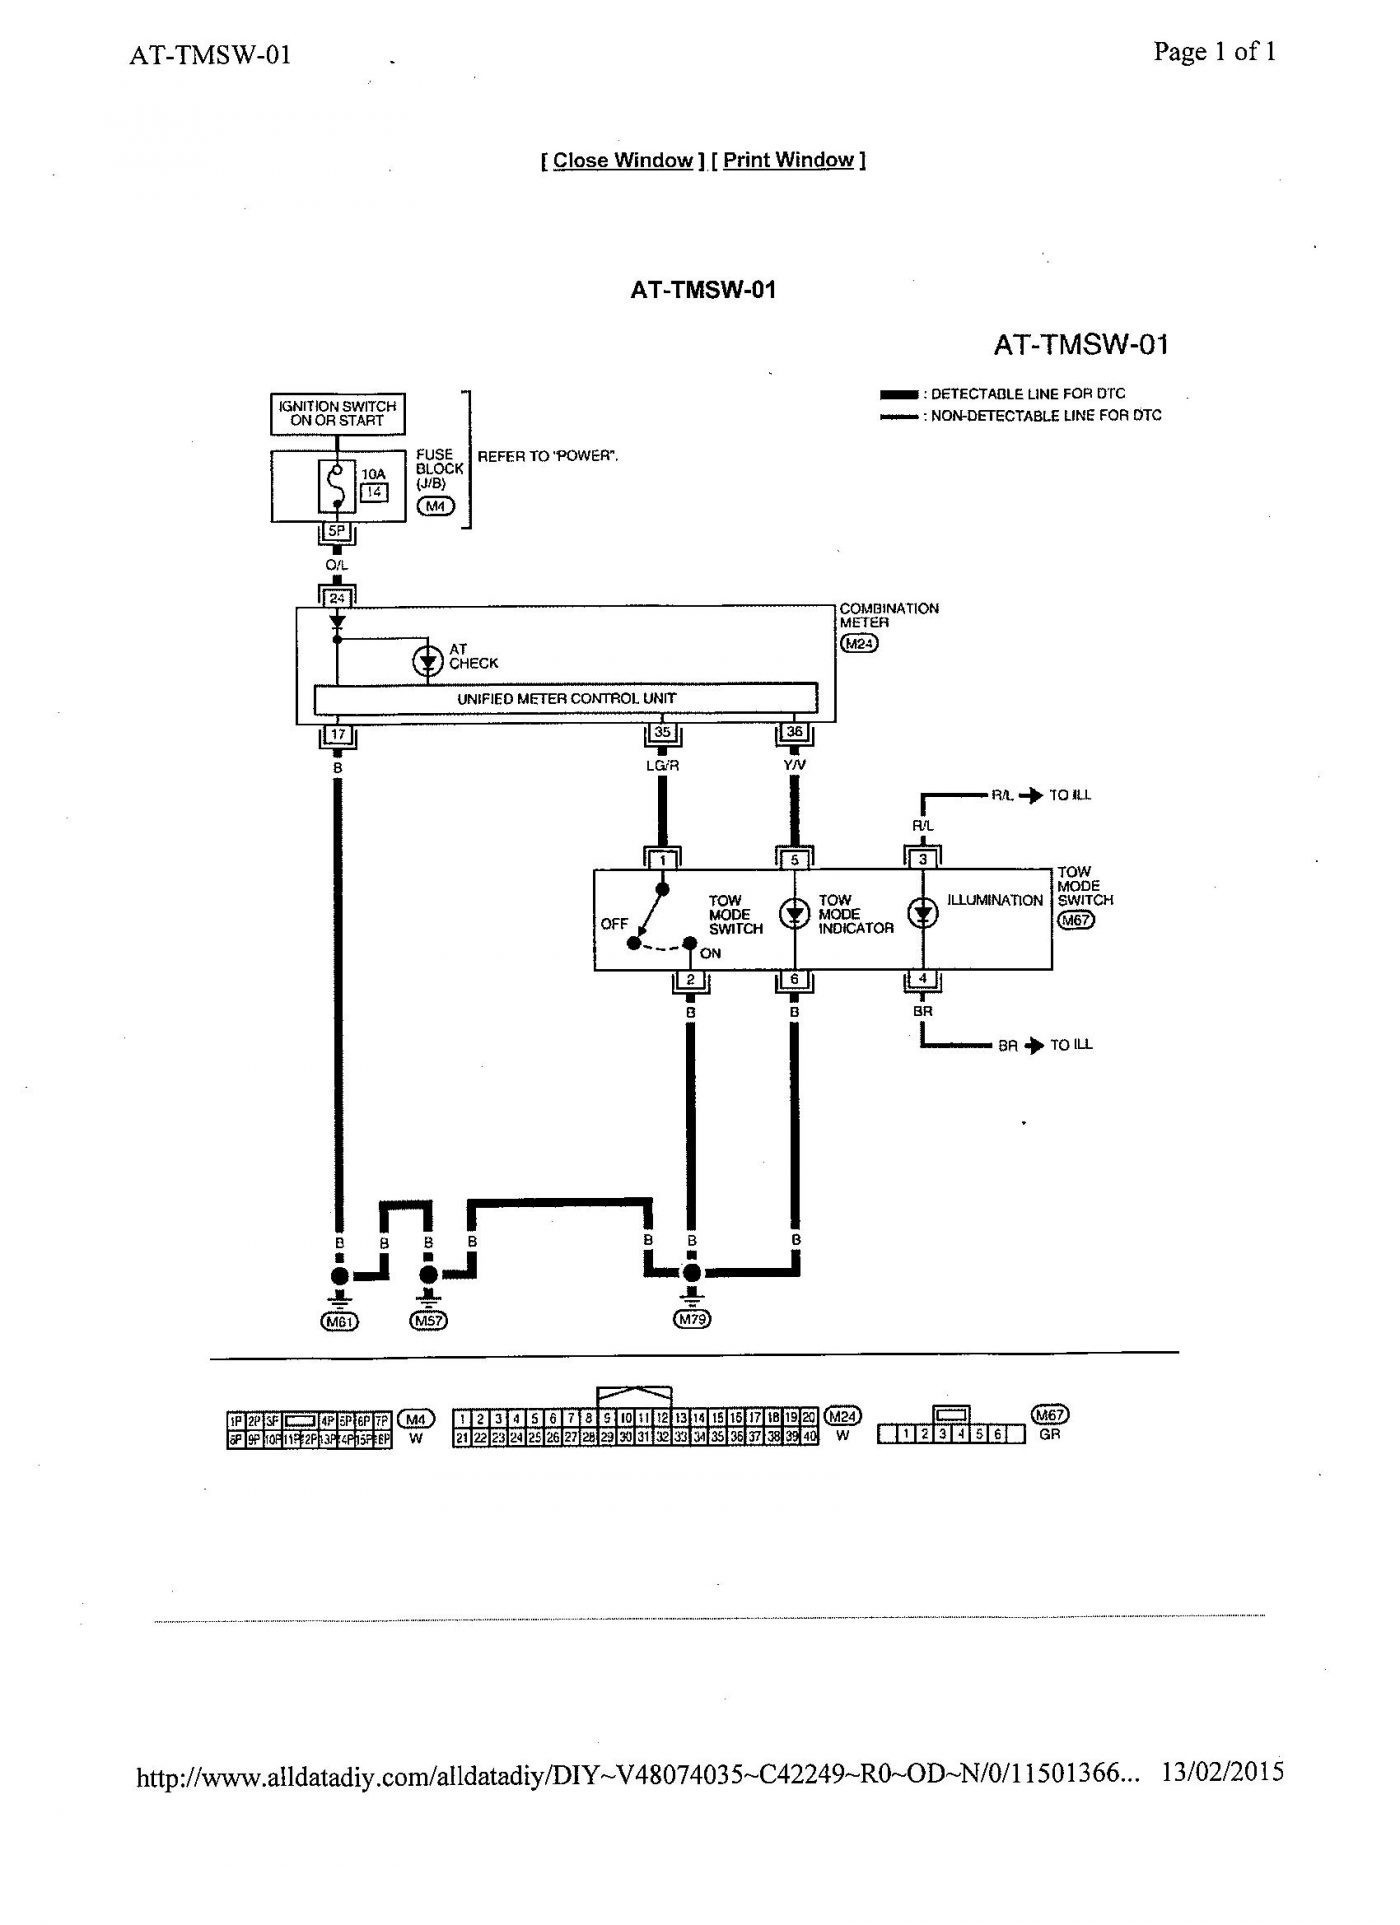 Double Pole toggle Switch Wiring Diagram Spdt toggle Switch Wiring Diagram Download Of Double Pole toggle Switch Wiring Diagram